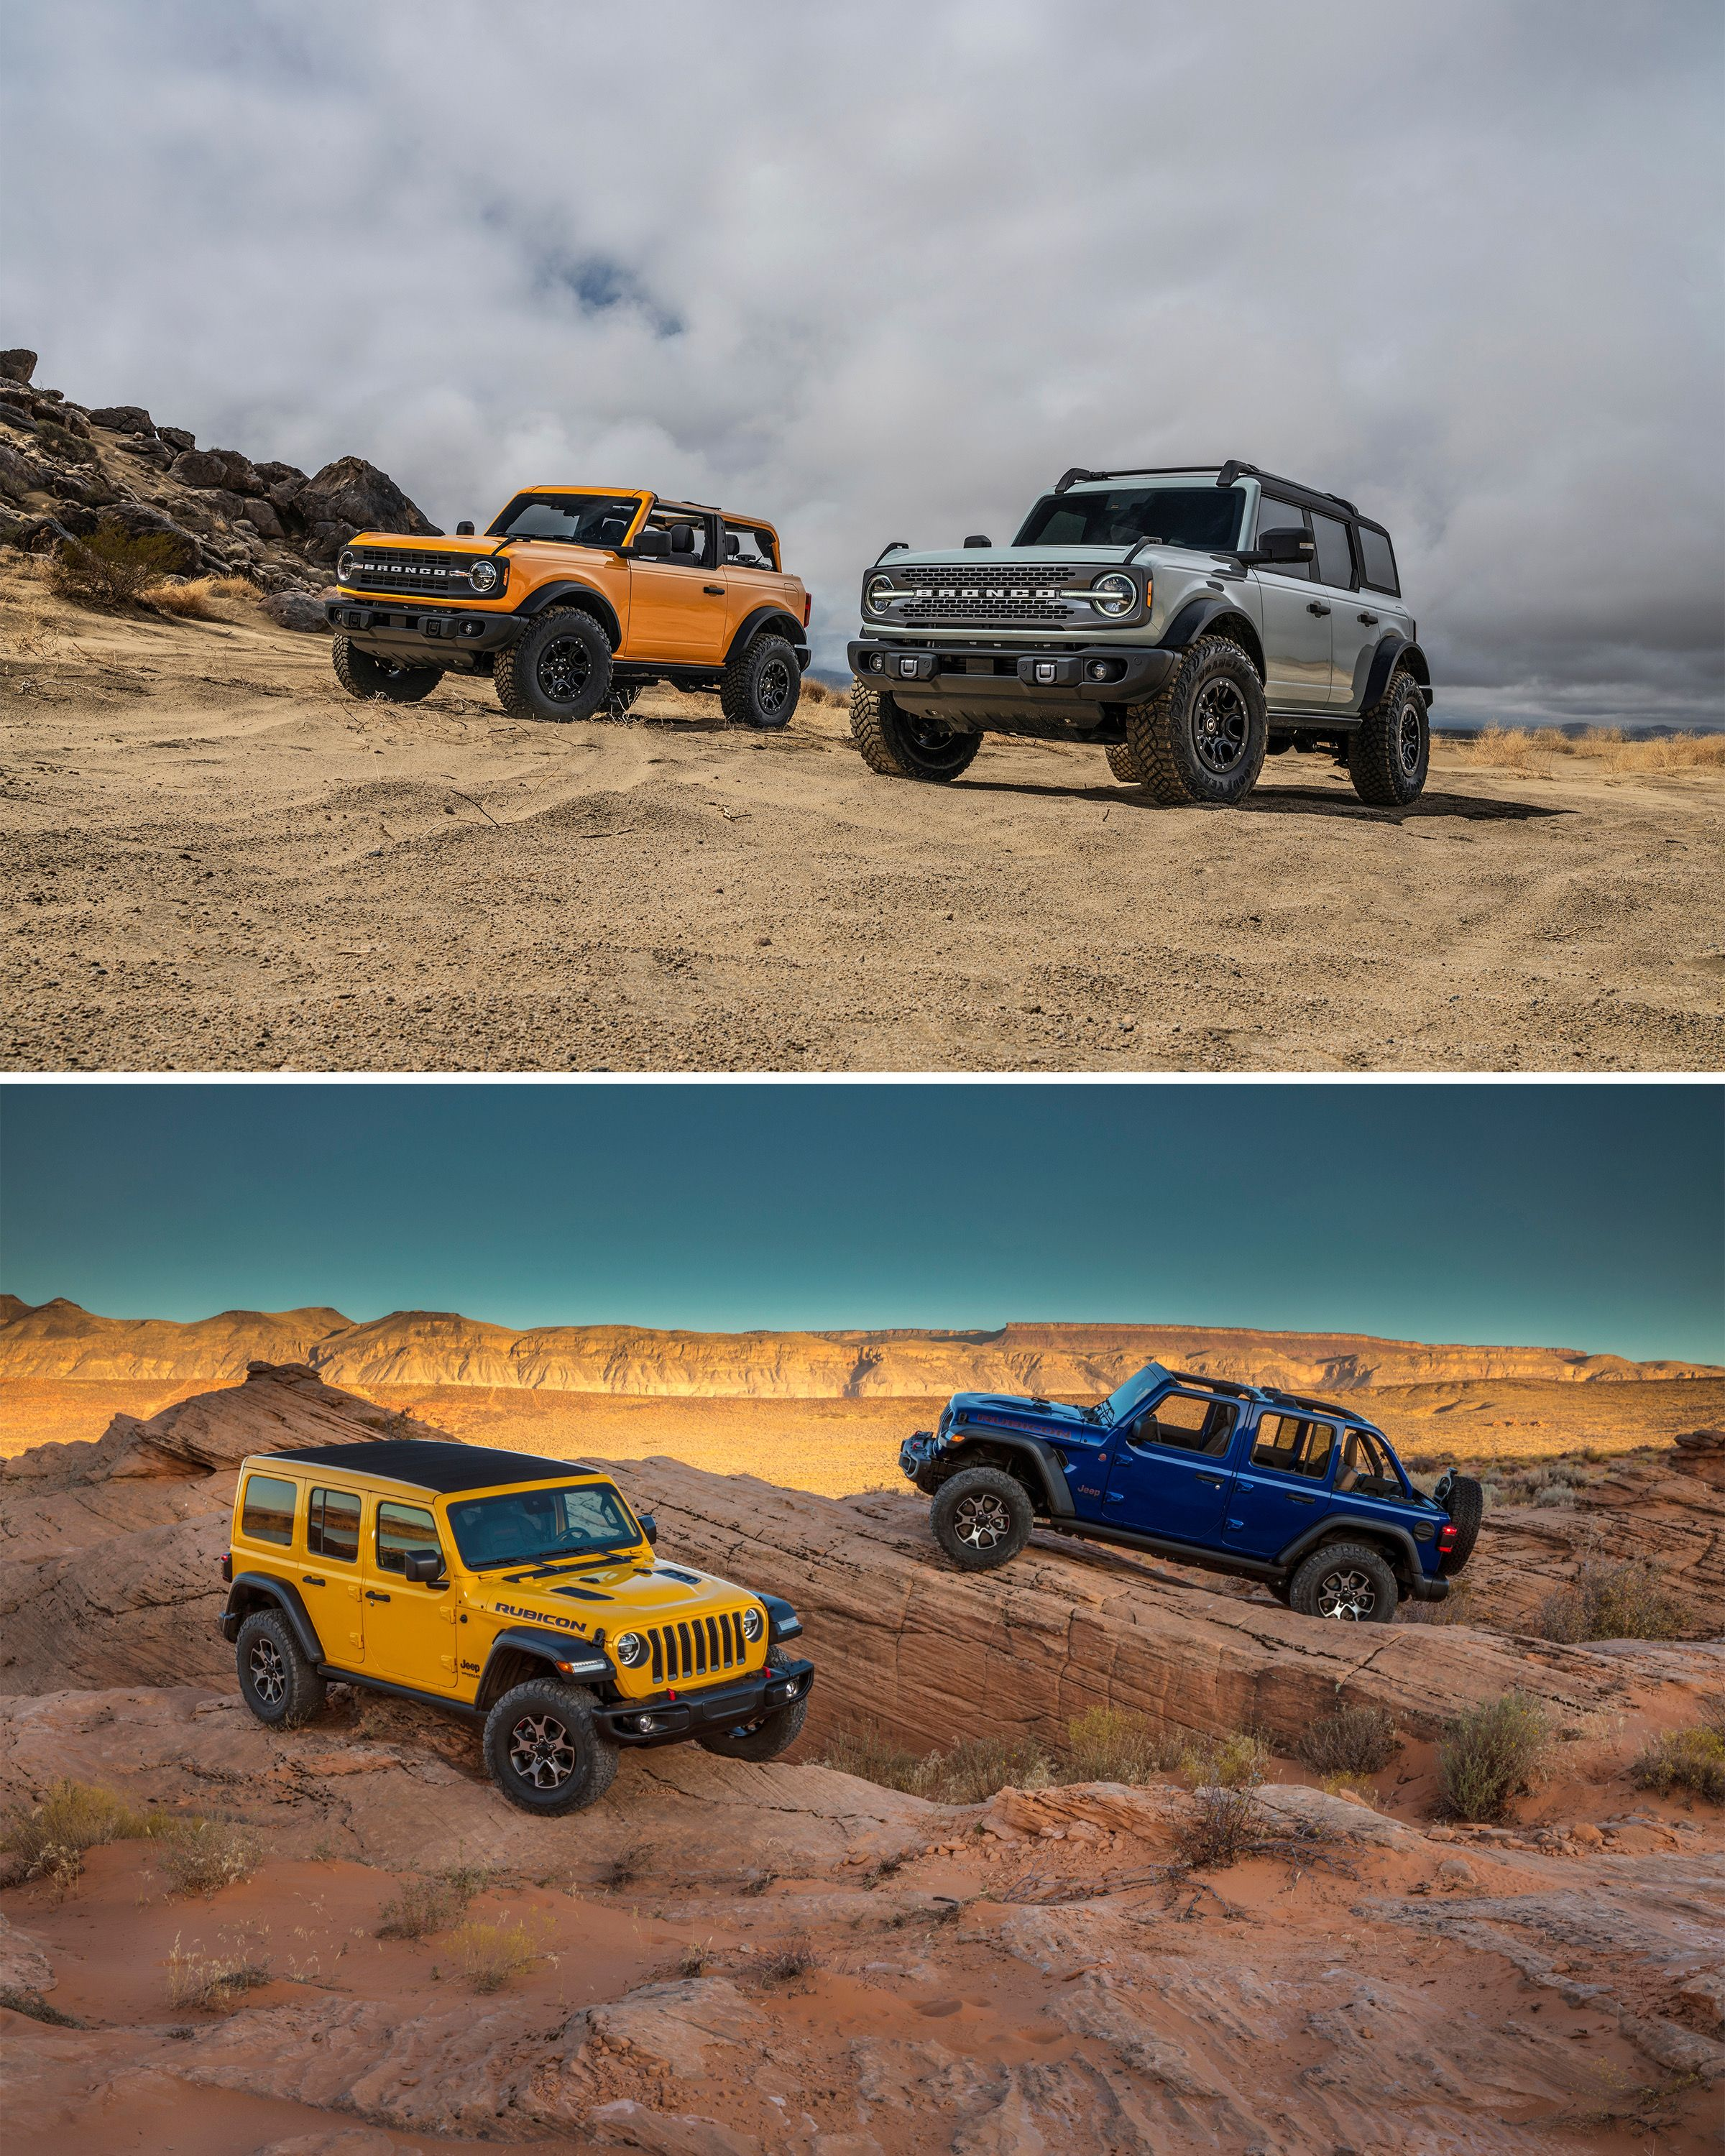 Ford Bronco Vs Jeep Wrangler In 2020 Ford Bronco Jeep Bronco